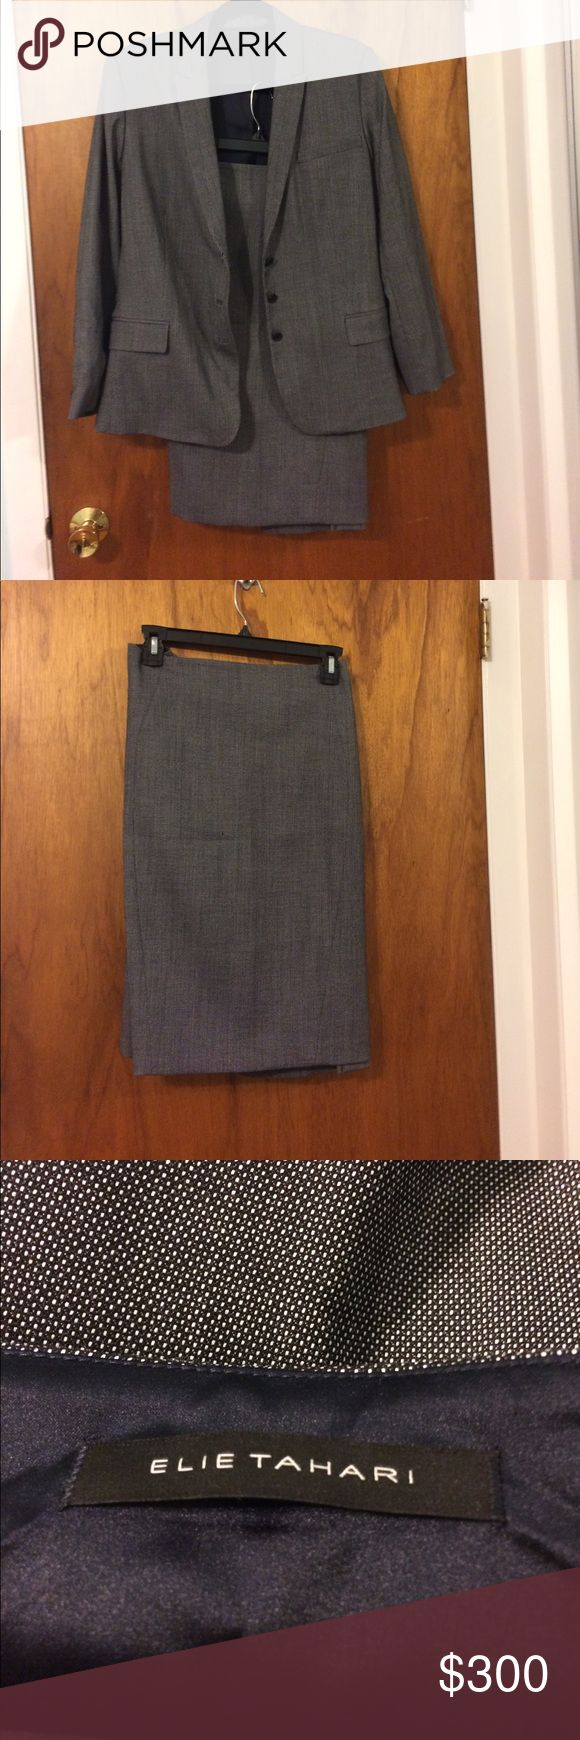 Elie Tahari Suit Elie Tahari grey suit Elie Tahari Other